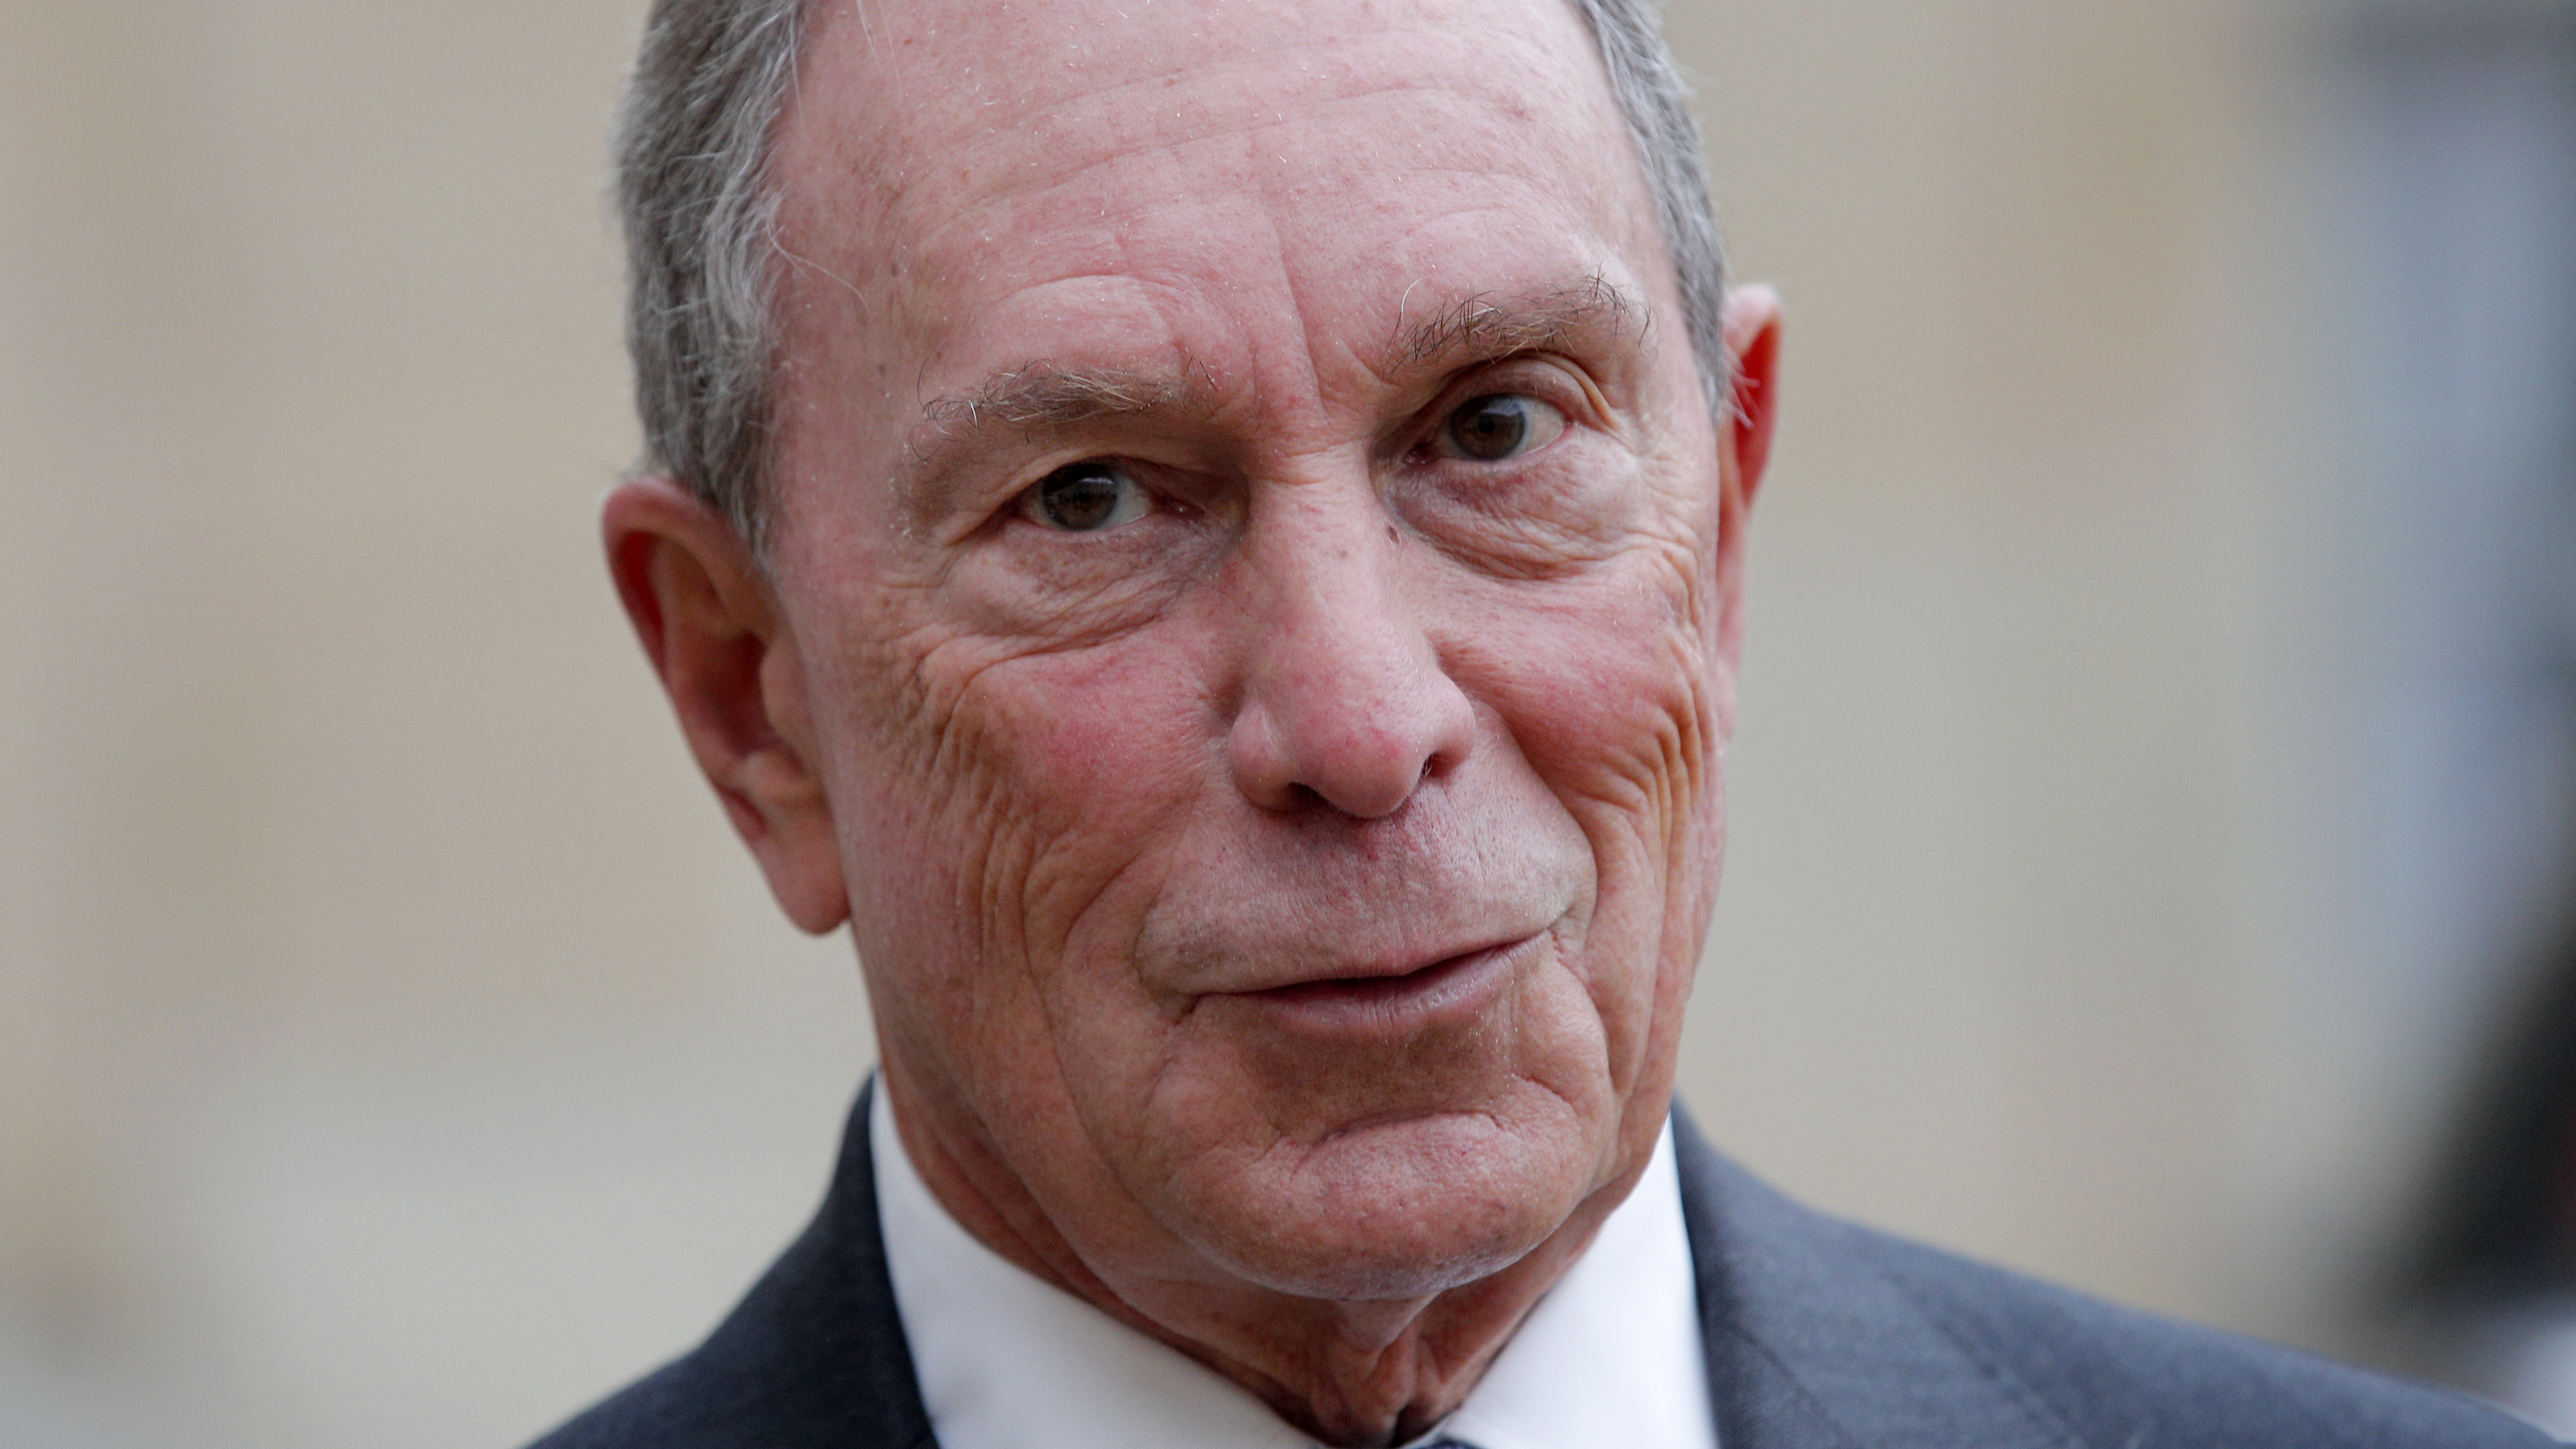 Bloomberg Promises $15 Million To Help Make Up For U.S. Withdrawal From Climate Deal